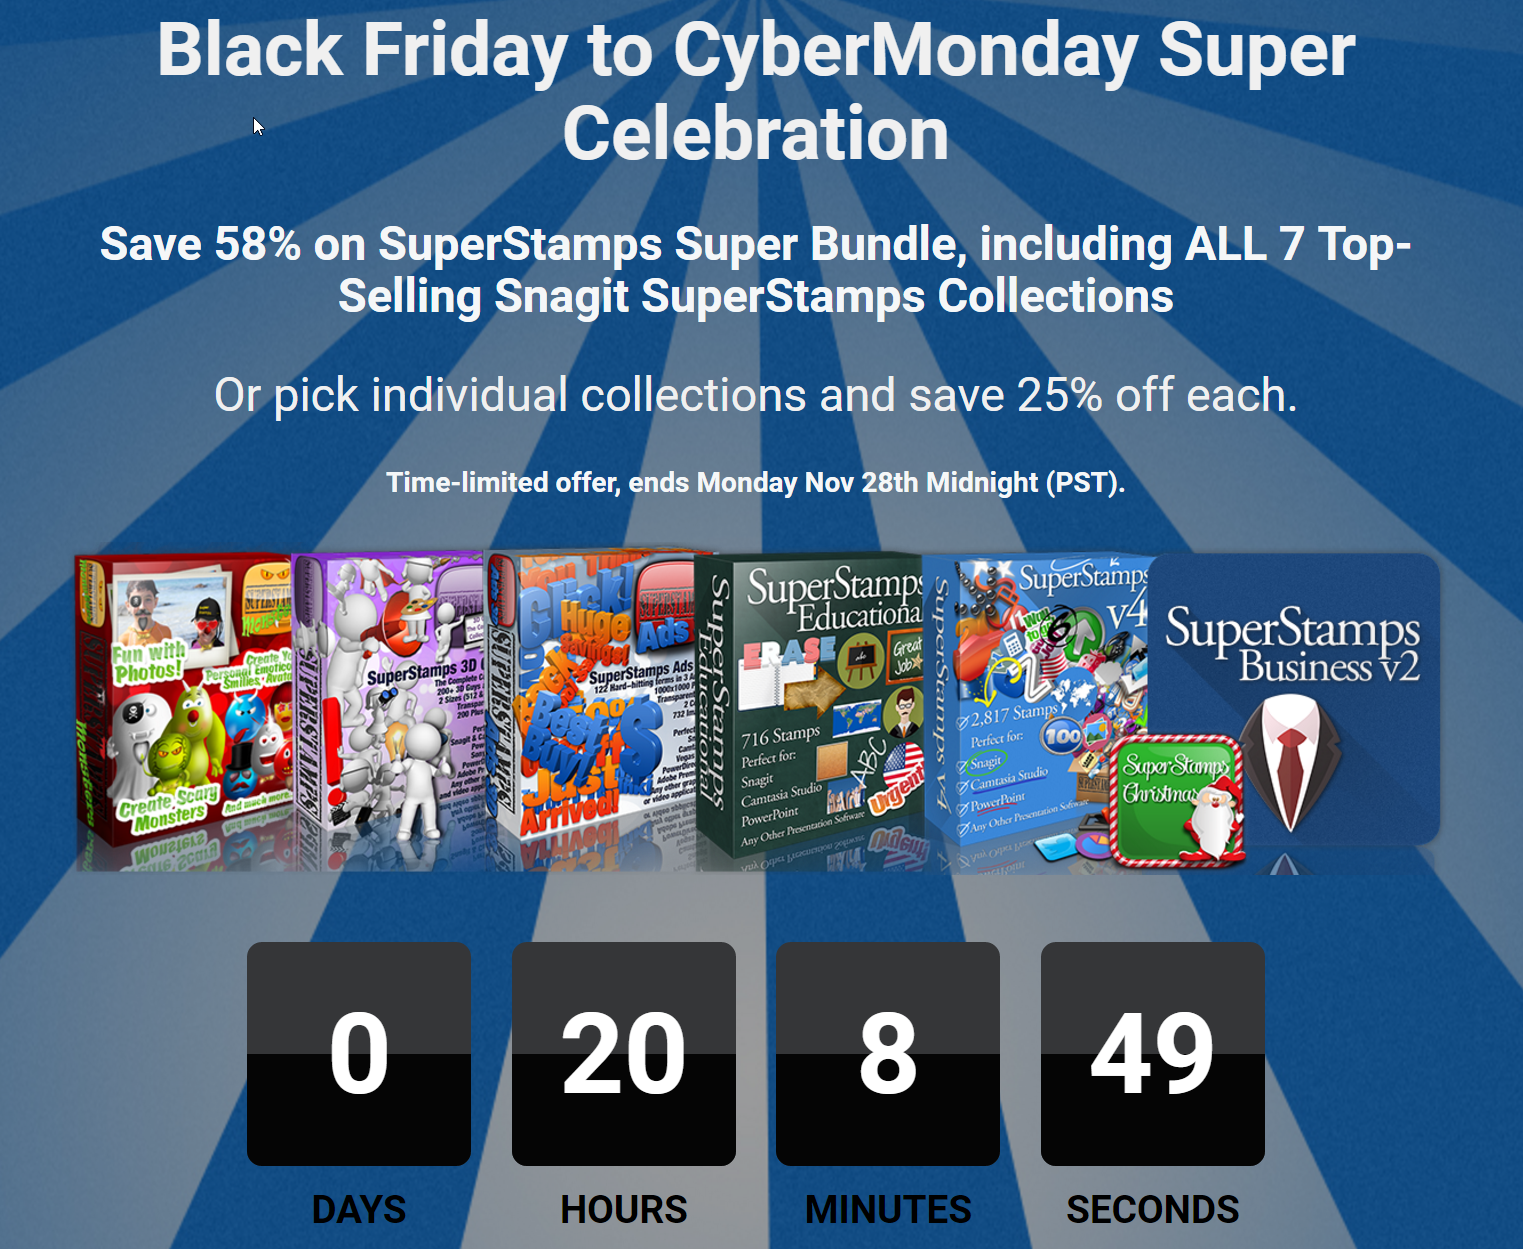 Complete coverage of WalMart Cyber Monday Ads & WalMart Cyber Monday deals info.